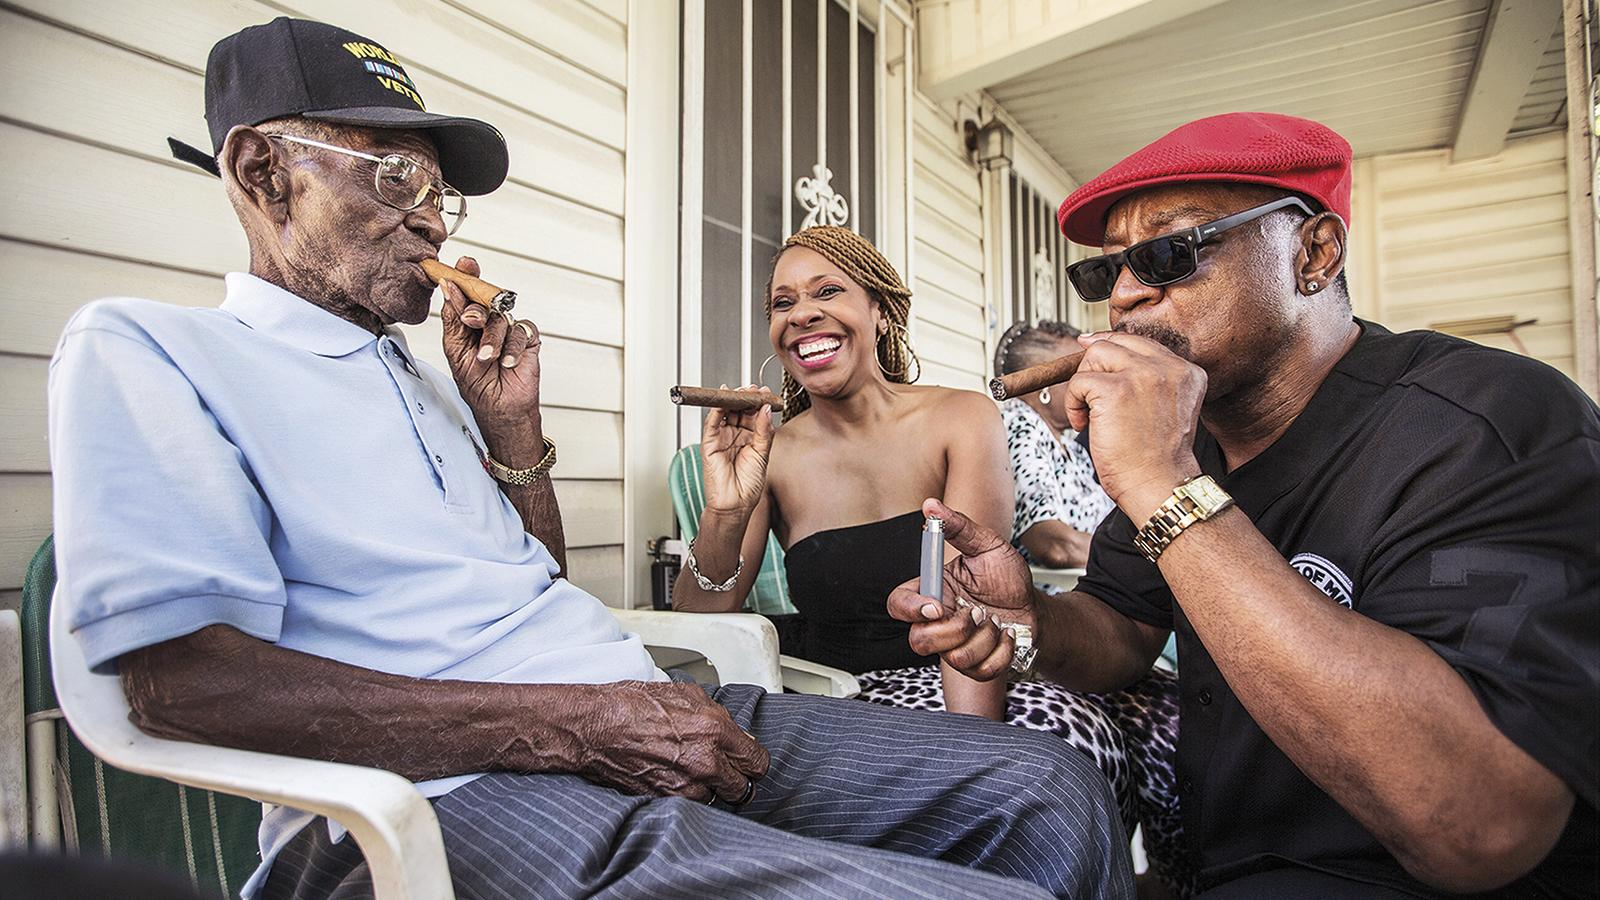 America's Oldest Man, Age 112, Smokes A Dozen Cigars A Day